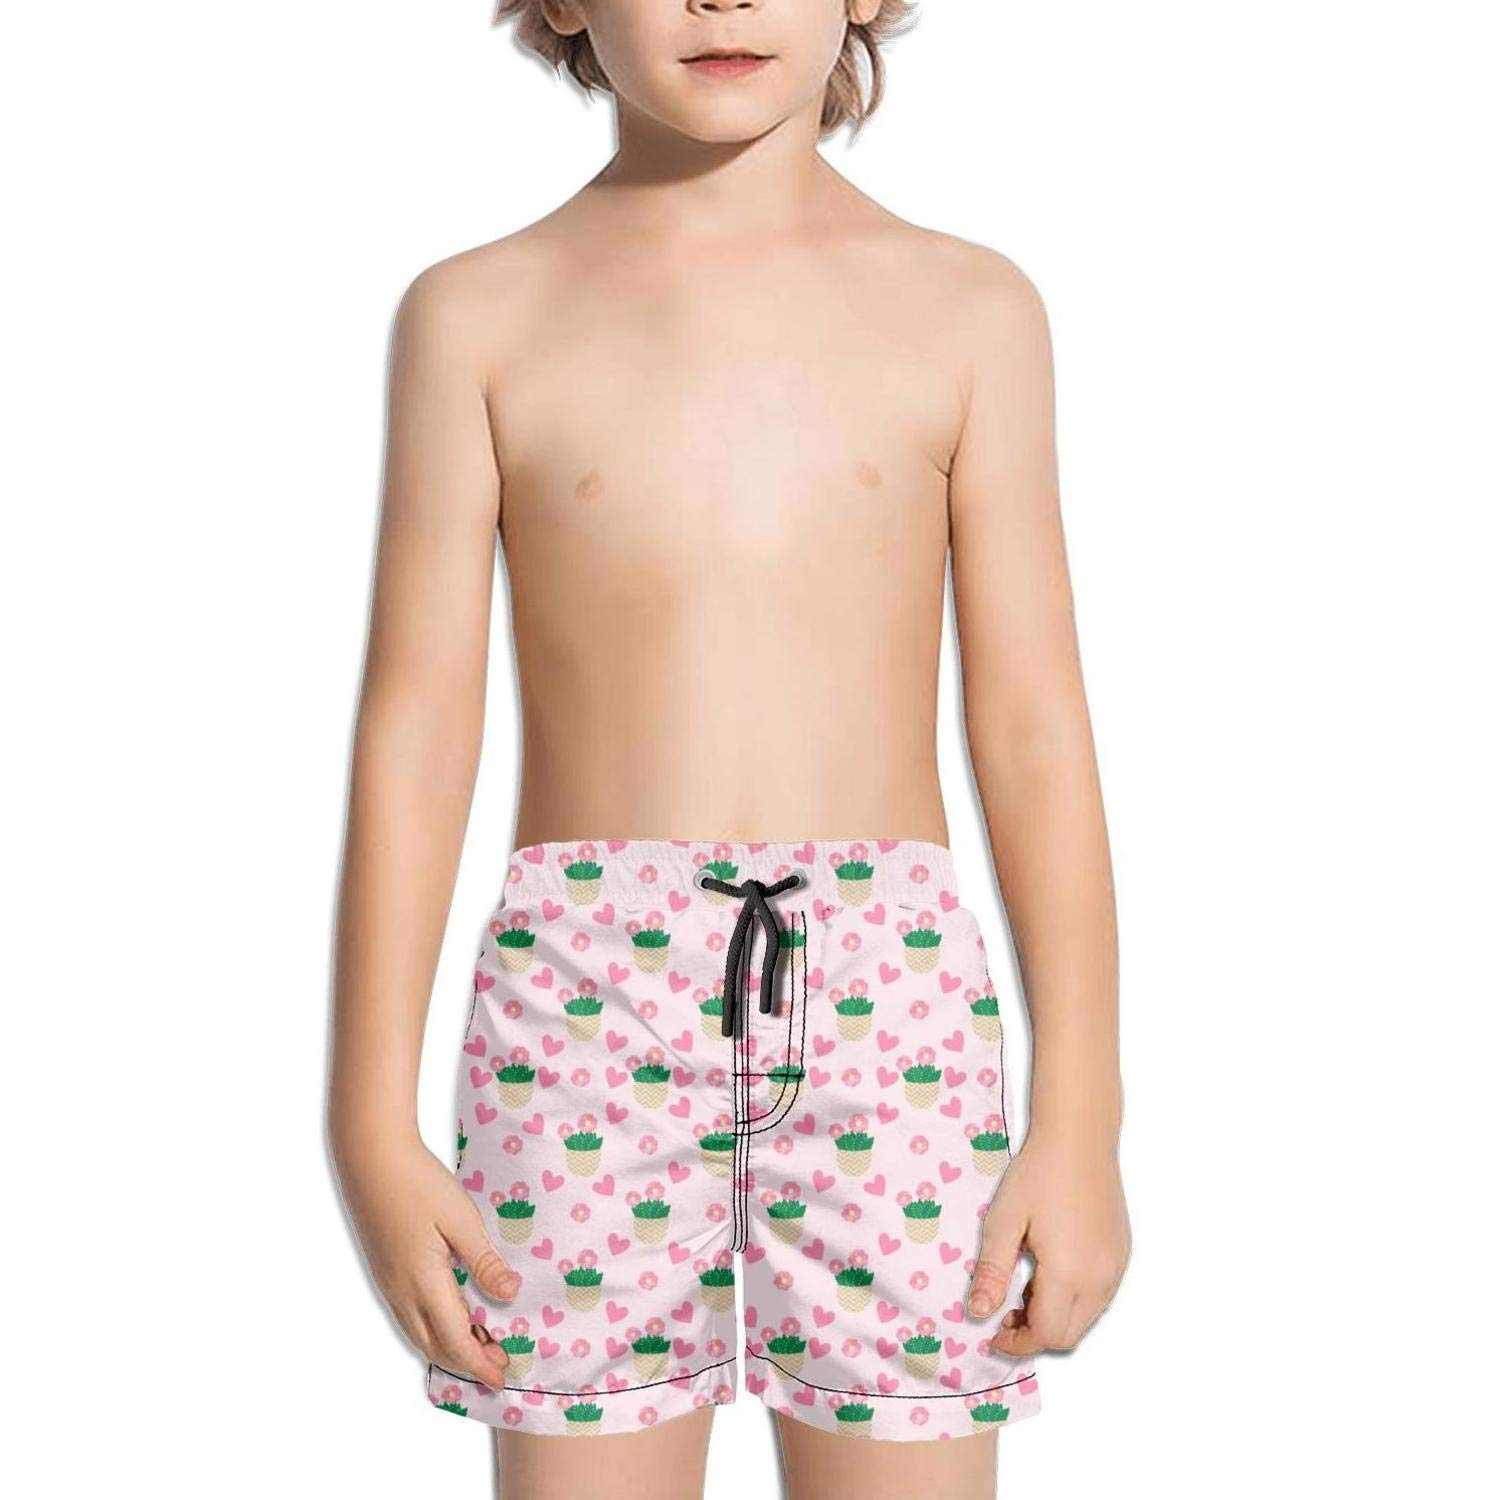 Rare Cactus with Purple Pot Kid Swimming Trunks Slim Fit Swim Shorts for Boys Vintage Beach Shorts for Girls